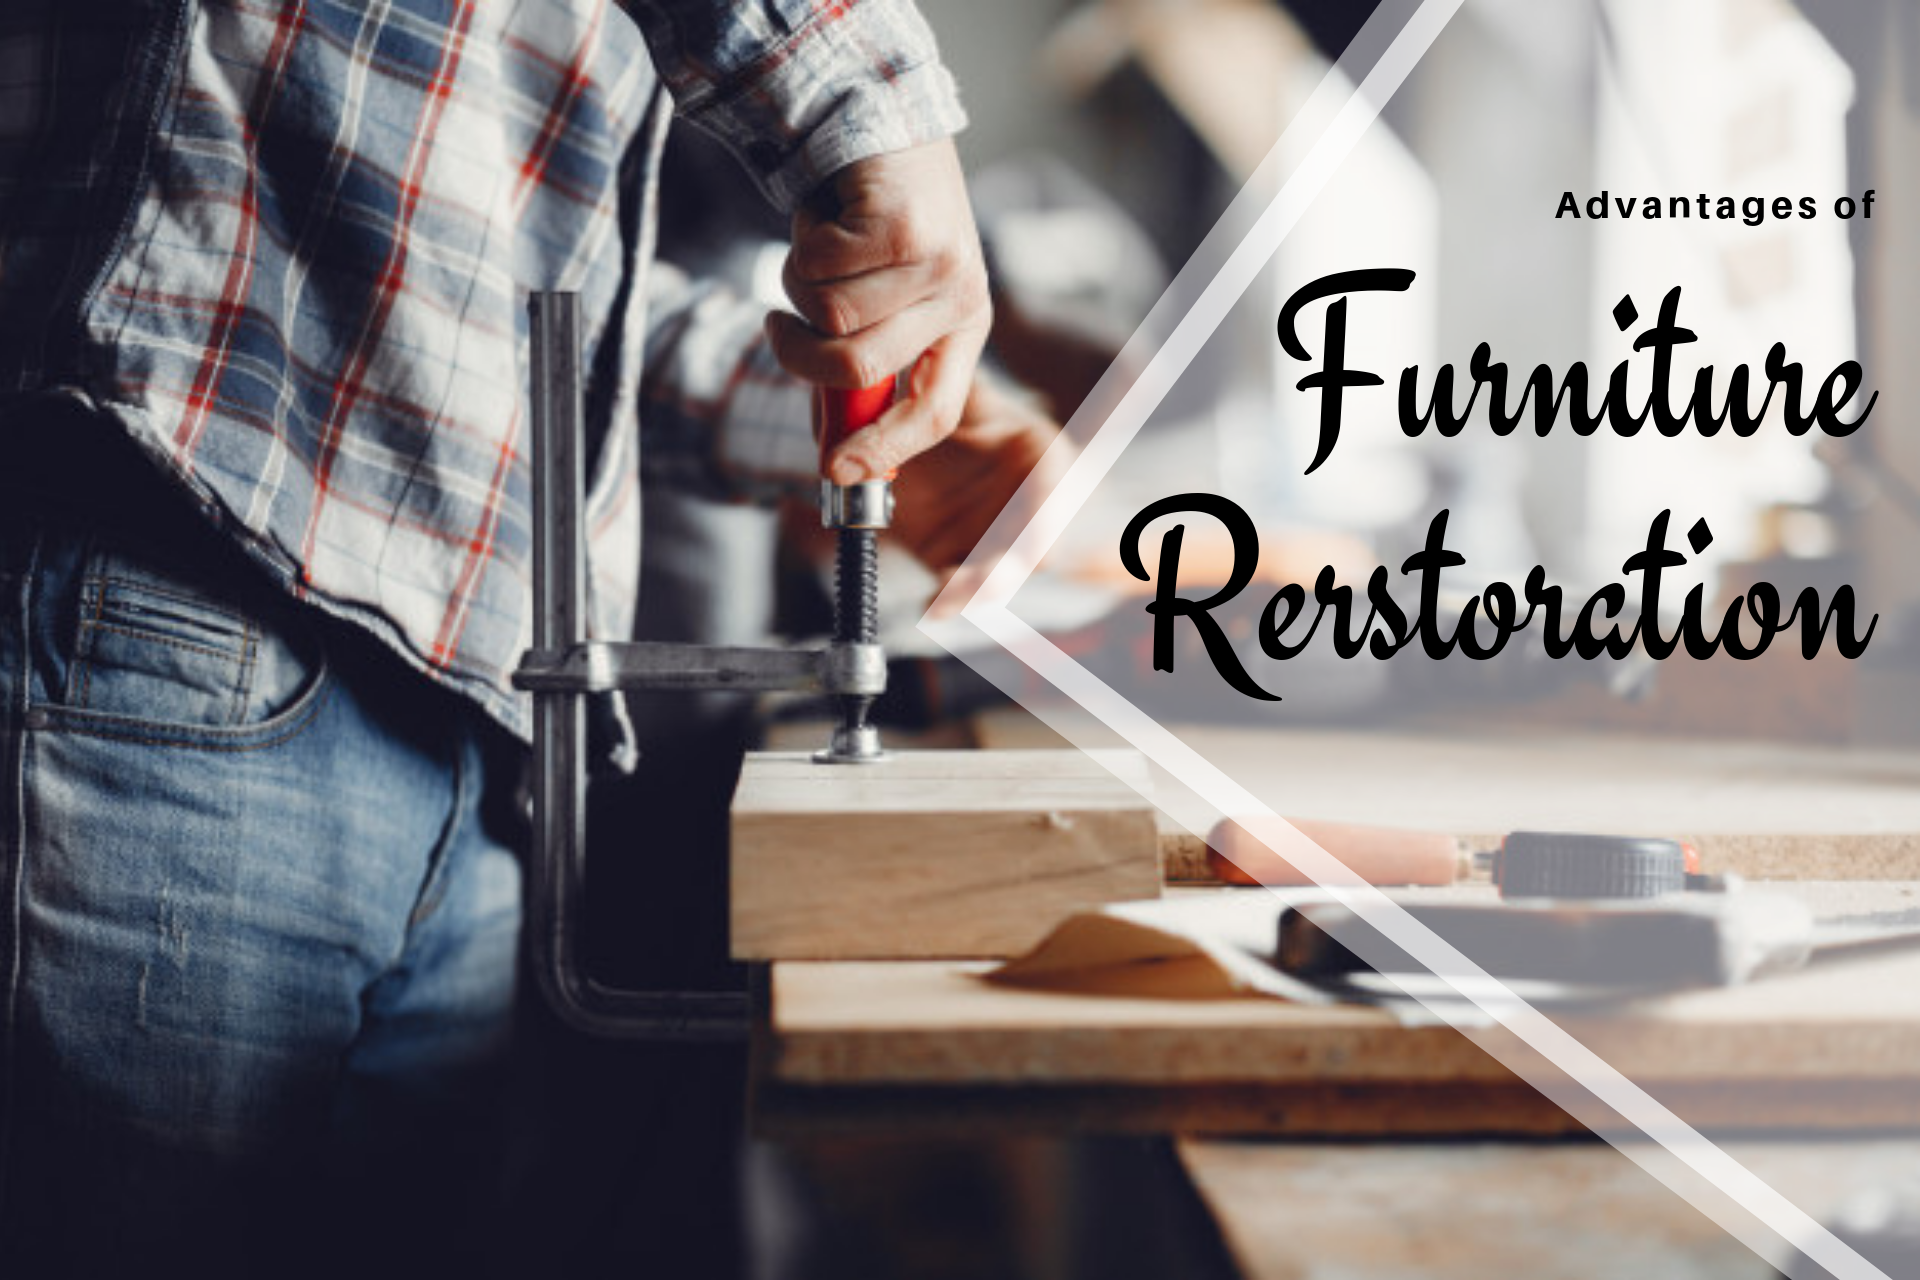 If you are looking to ensure that you keep your precious #furniture in possession even if the furniture is not in a condition of using then the best option for your will be to avail furniture restoration service through you will keep the possession of your old furniture. #FurnitureRepair #FurnitureRestoration